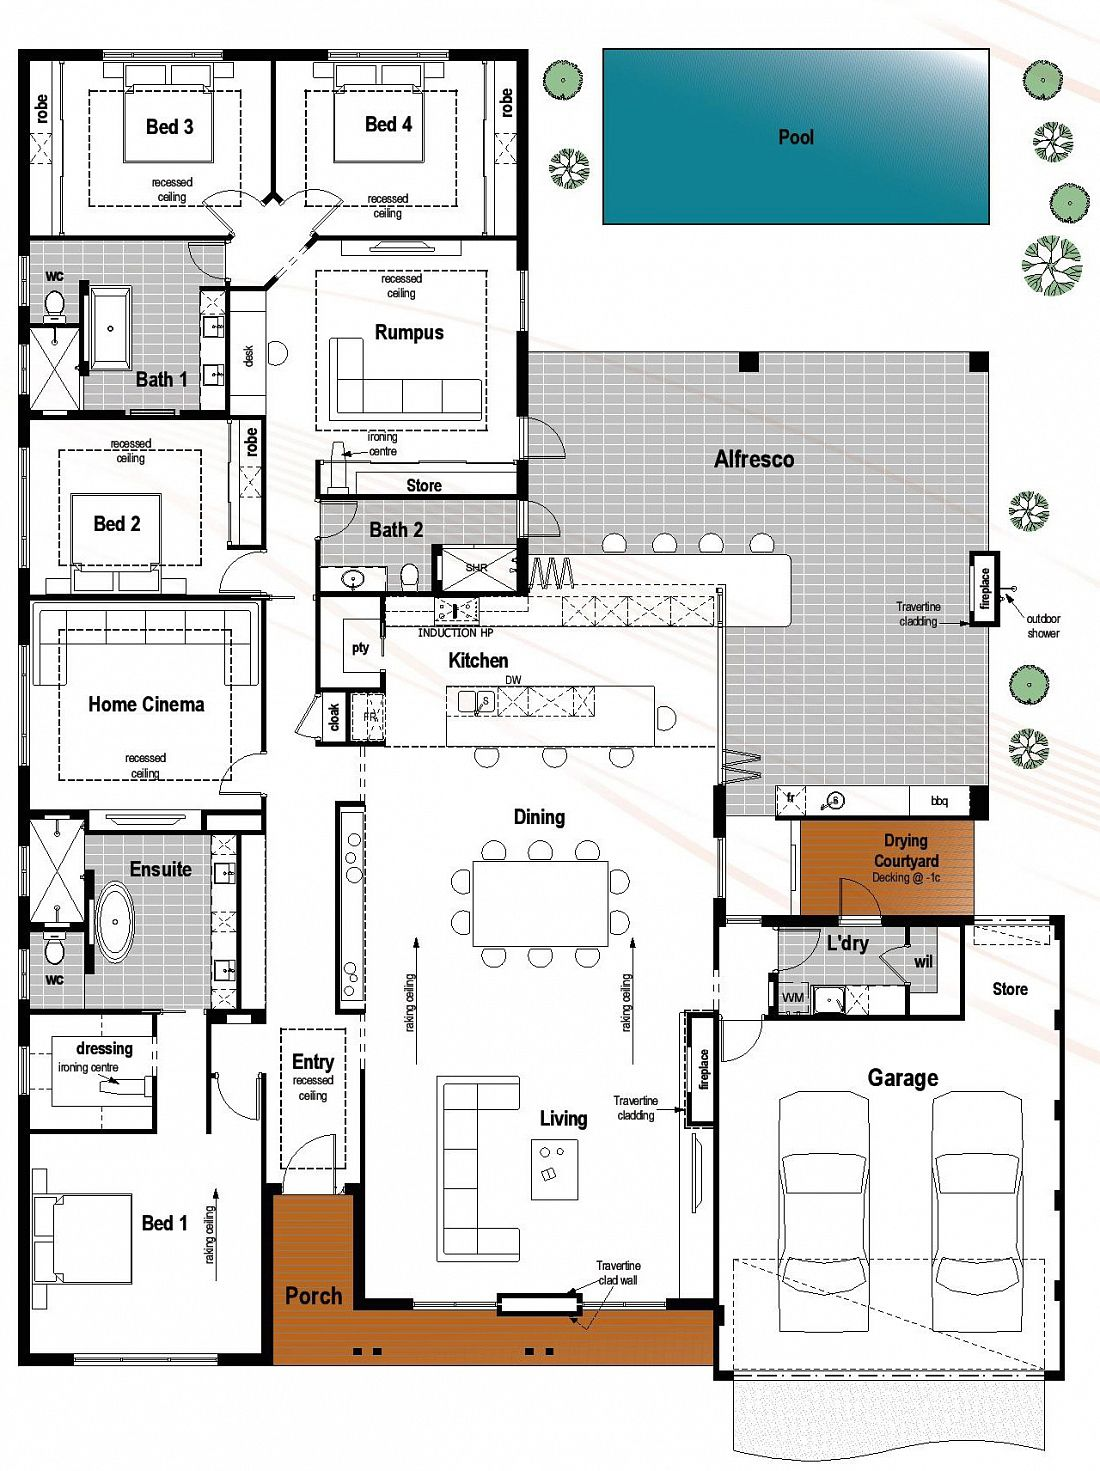 Floor plan friday 4 bedroom 3 bathroom with modern skillion roof diy home decorating for 4 bedroom cabin plans